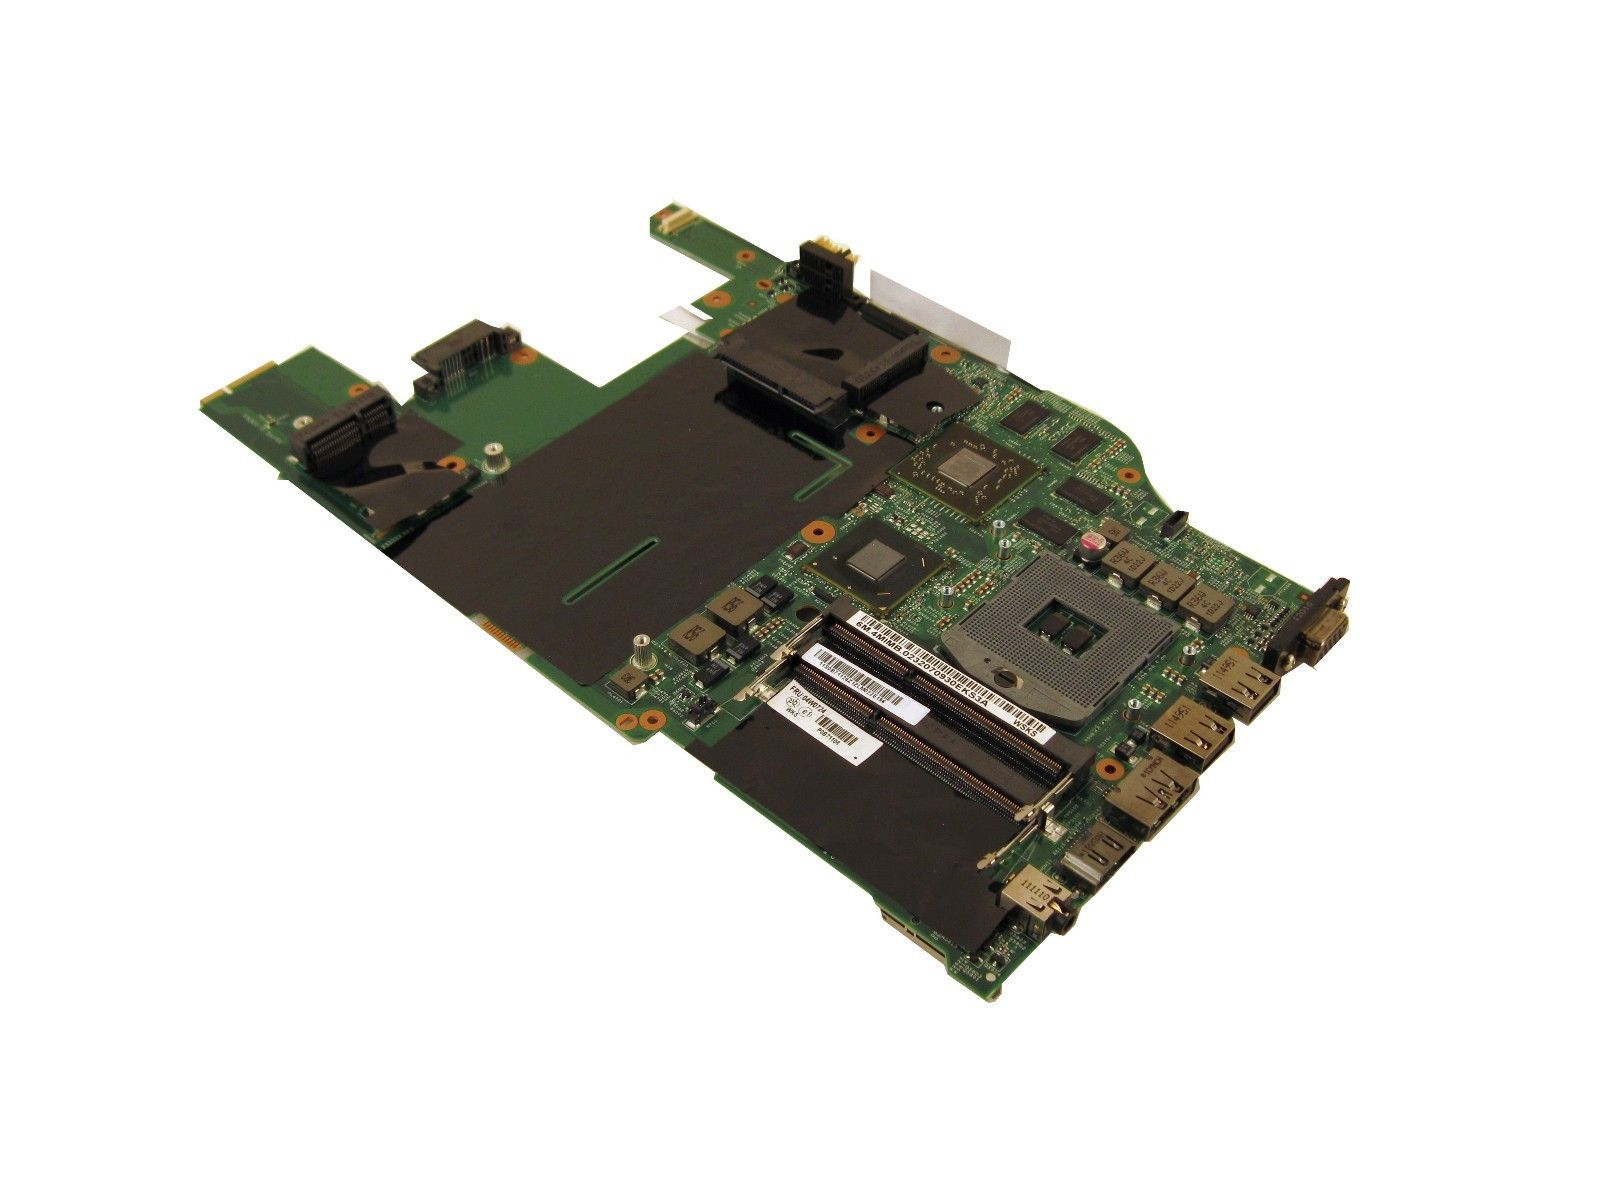 IBM 04W0724 Lenovo Thinkpad Edge E520 Laptop Motherboard